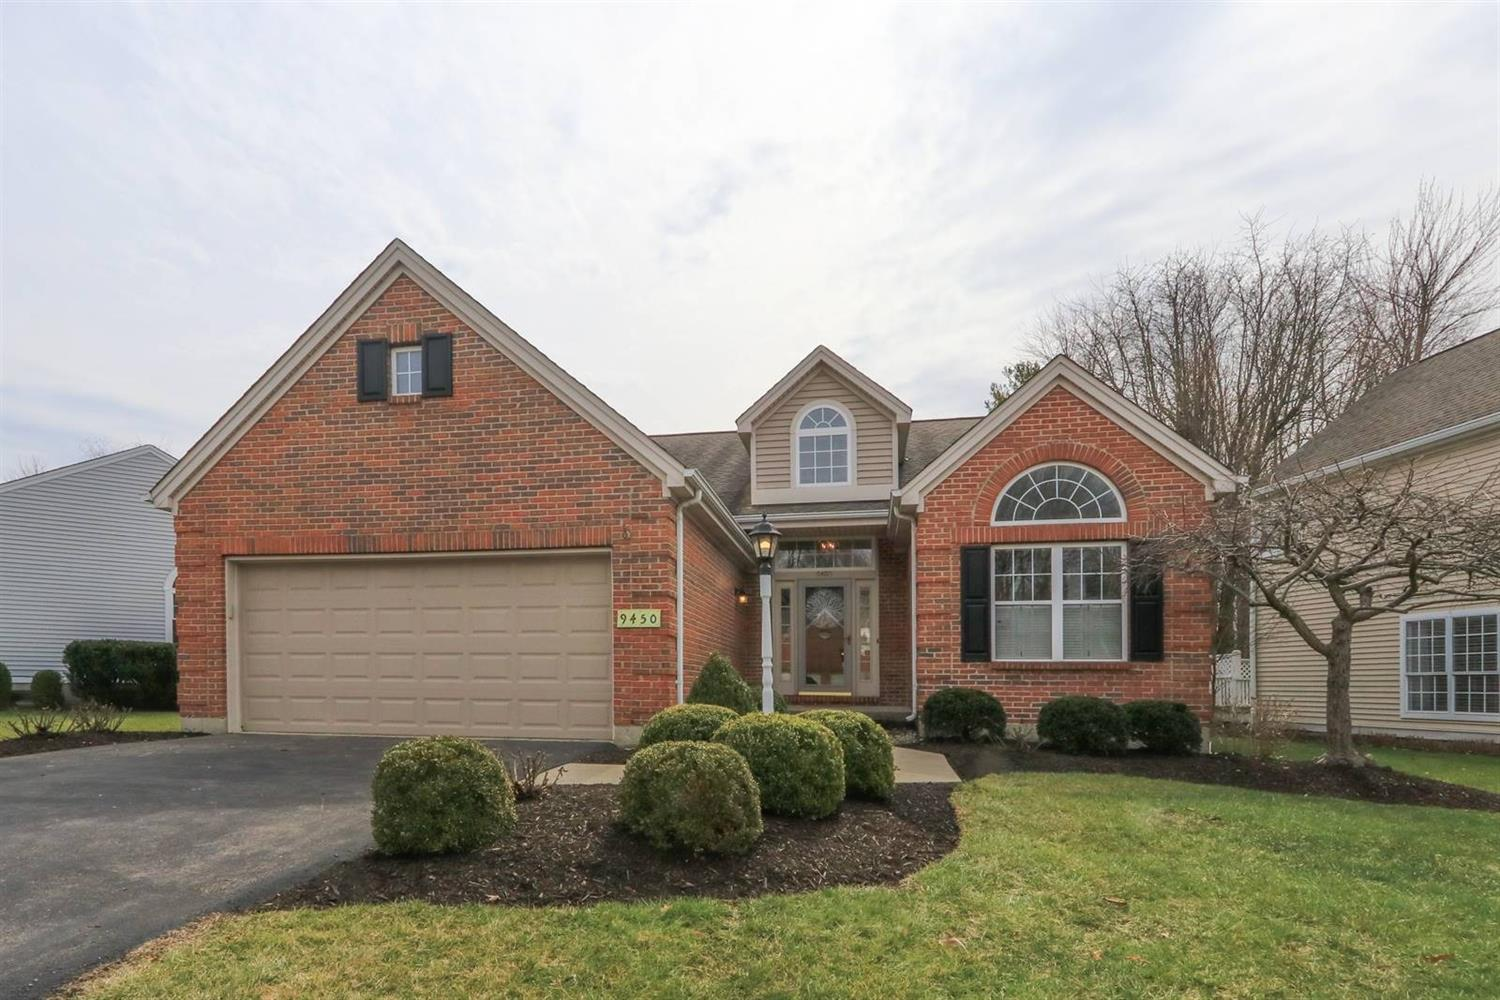 Property for sale at 9450 Carriage Run Circle, Deerfield Twp.,  Ohio 45140